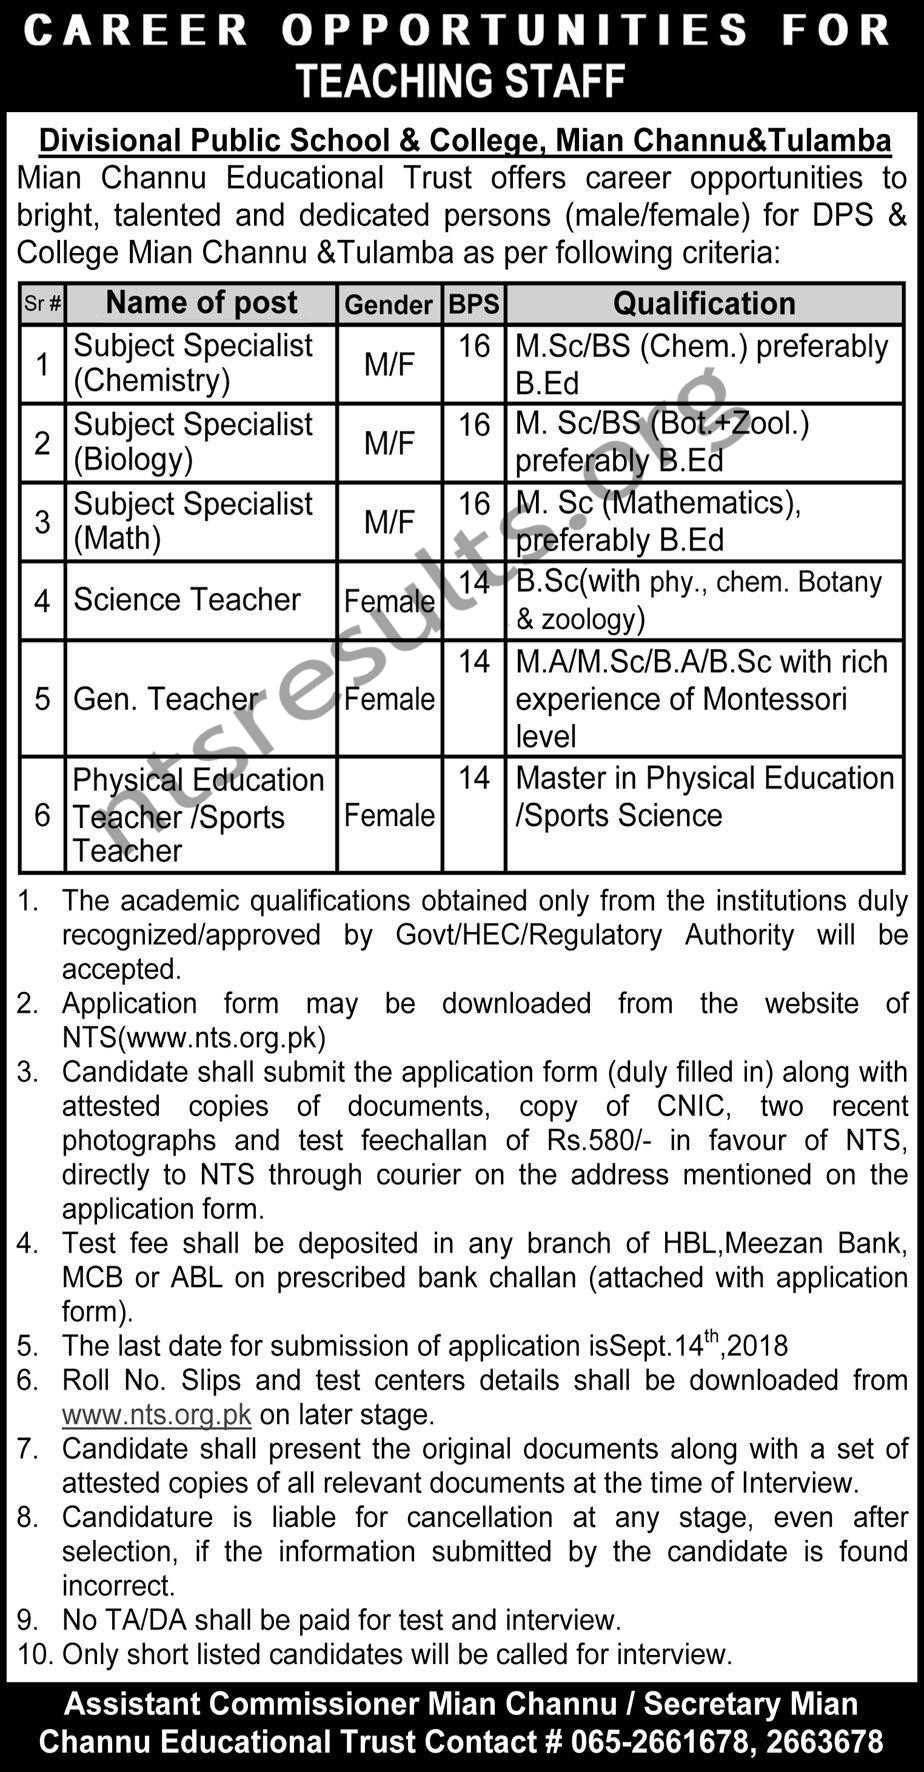 DPS Divisional Public School College Mian Channu Tulamba Jobs Via NTS